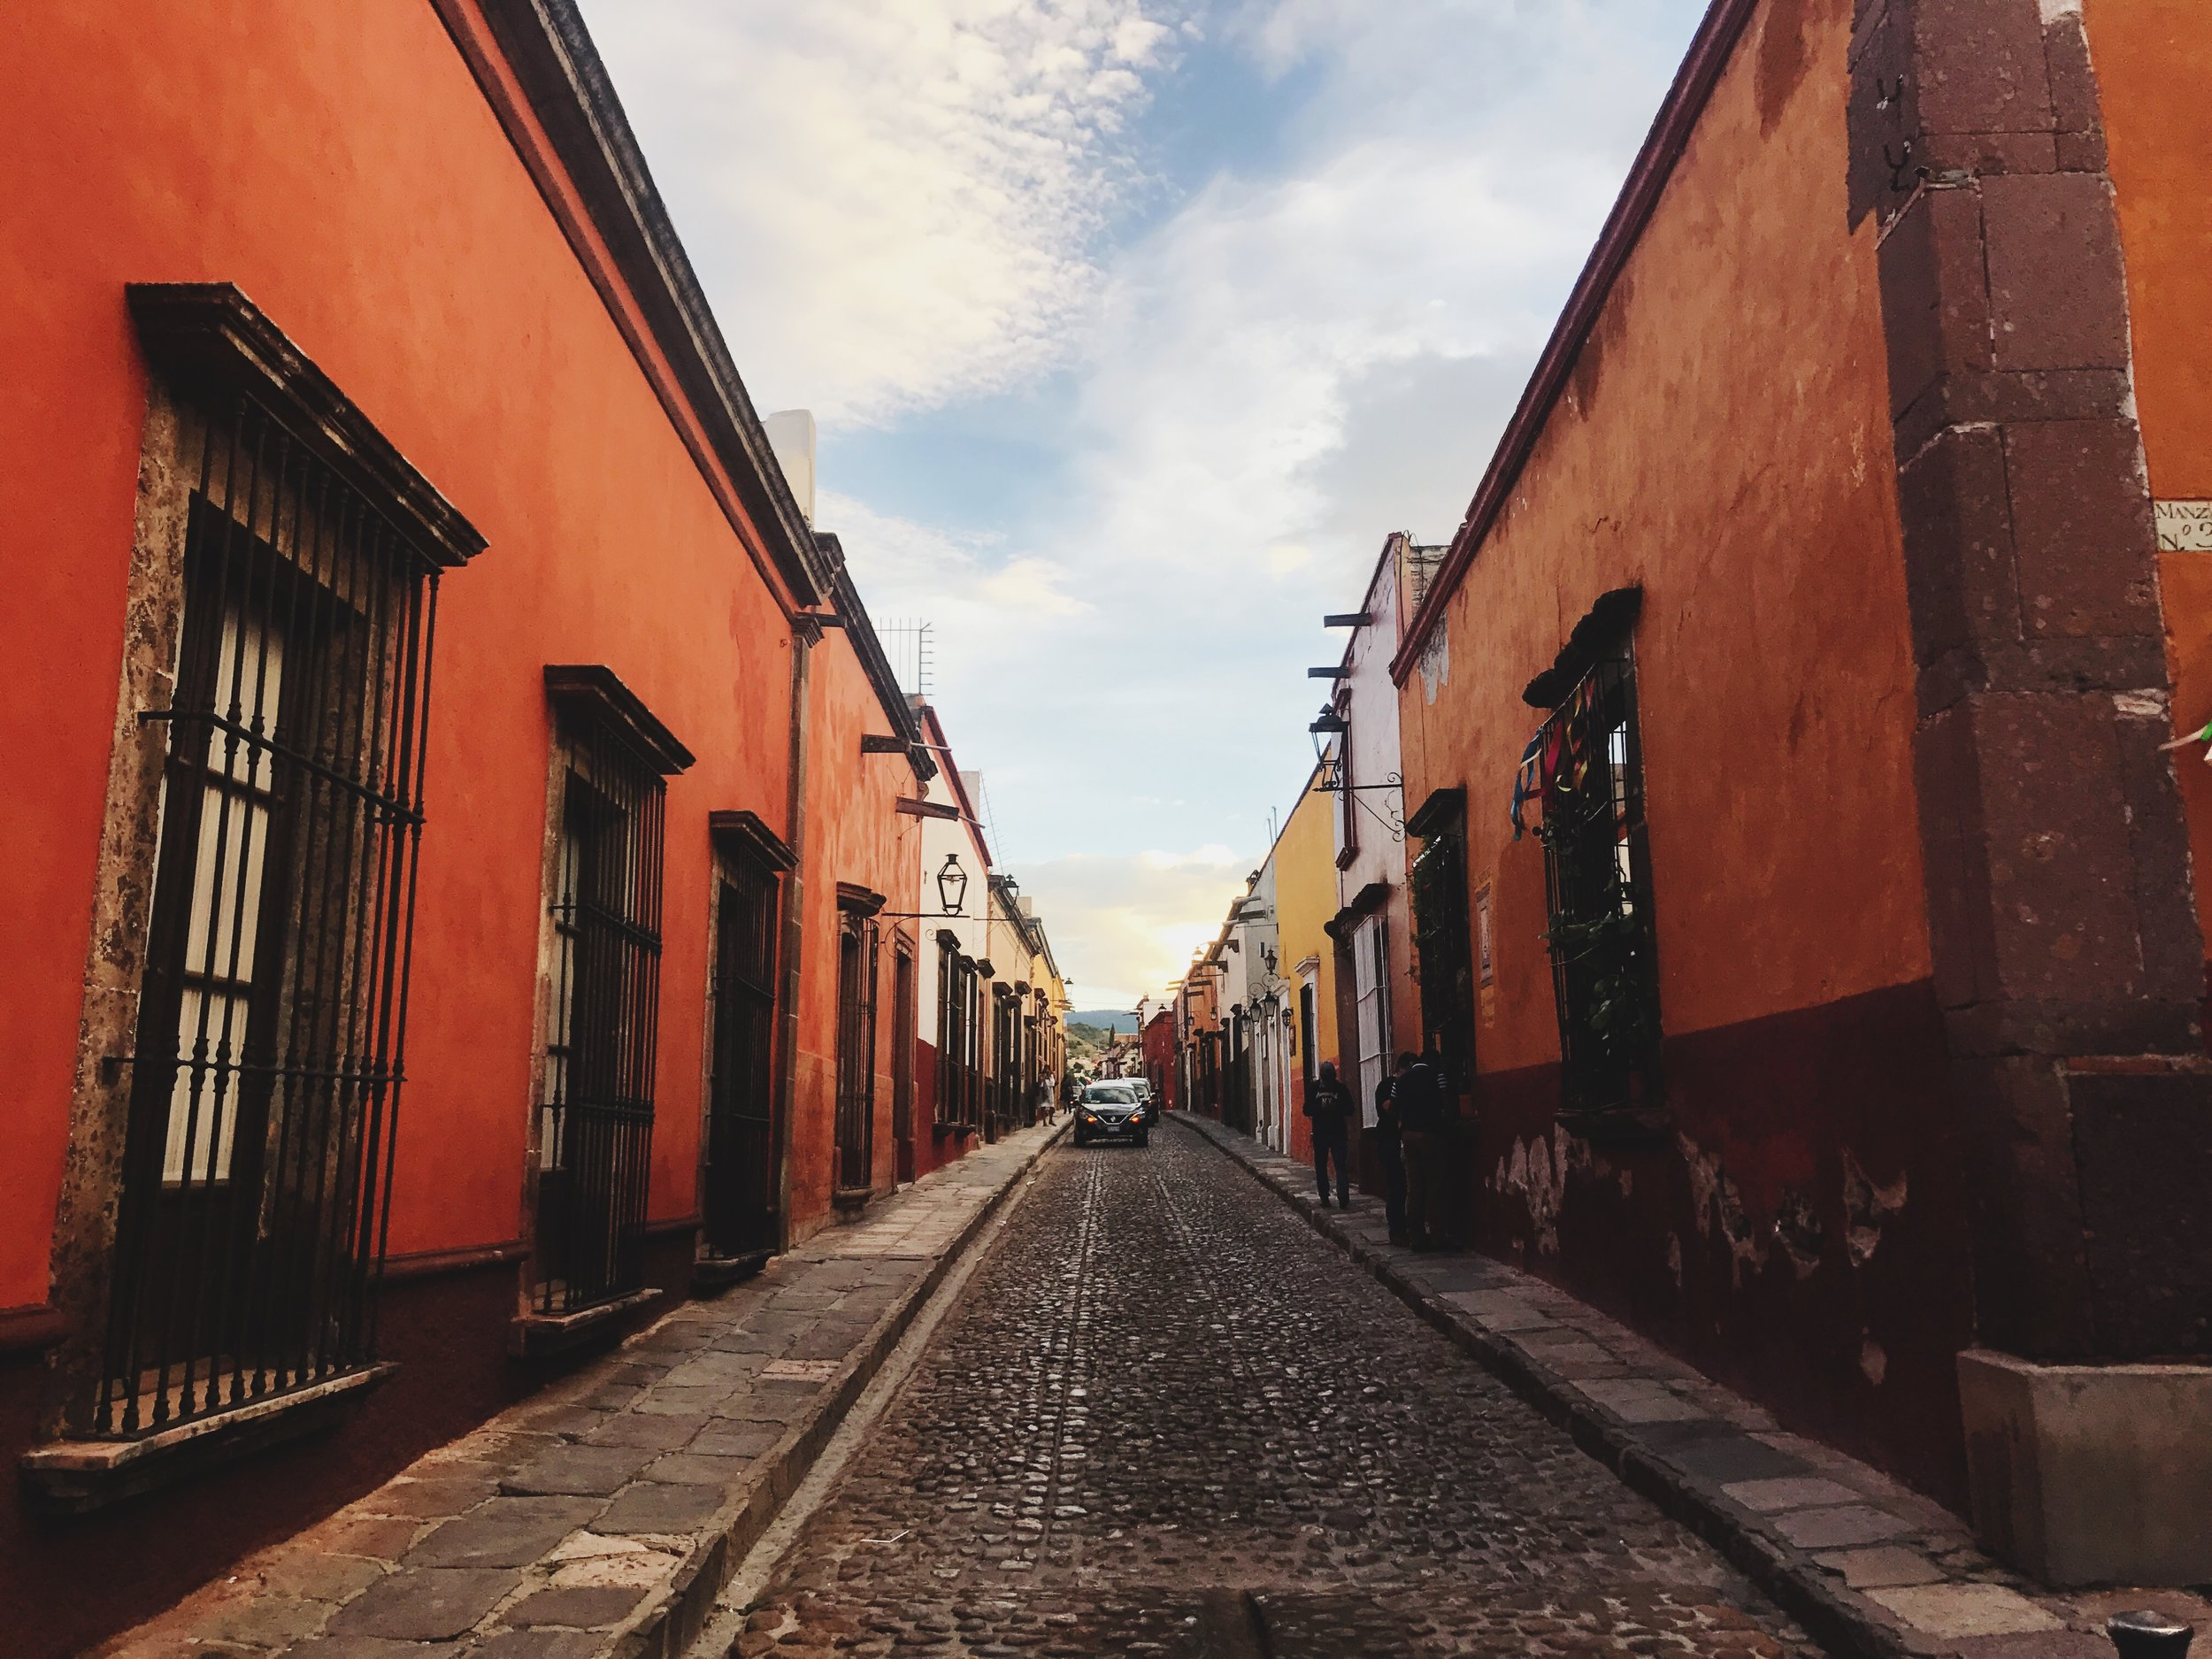 San Miguel de Allende - (OCT/NOV) ONE OF THE MOST BEAUTIFUL CITIES IN THE WORLD - A UNESCO WORLD HERITAGE SITE - ENJOY A WEEK OF NAVIGATING NARROW COBBLESTONE STREETS, ADMIRING STREET ART, BOUTIQUES AND ART GALLERIES. AN AUTHENTIC DAY OF THE DEAD EXPERIENCE WITH FESTIVALS, PARADES AND GRAVEYARD TOURS. EXPRESS INTEREST NOW FOR 2018!